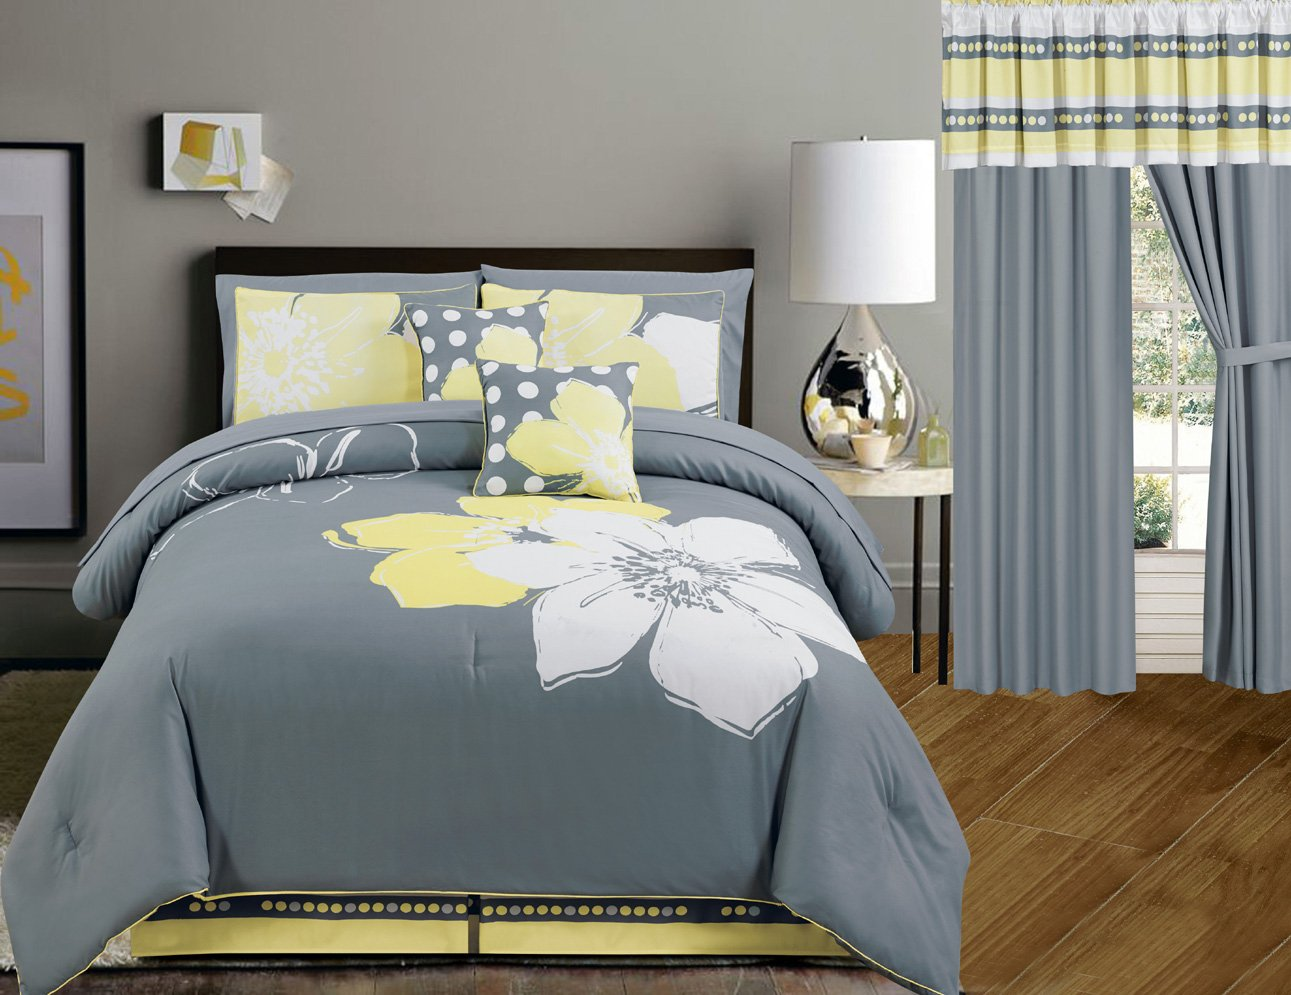 Amazon.com: Yellow Grey White Floral Bed In A Bag QUEEN Size Bedding +  Sheets + Curtains + Accent Pillows Comforter Set: Home U0026 Kitchen